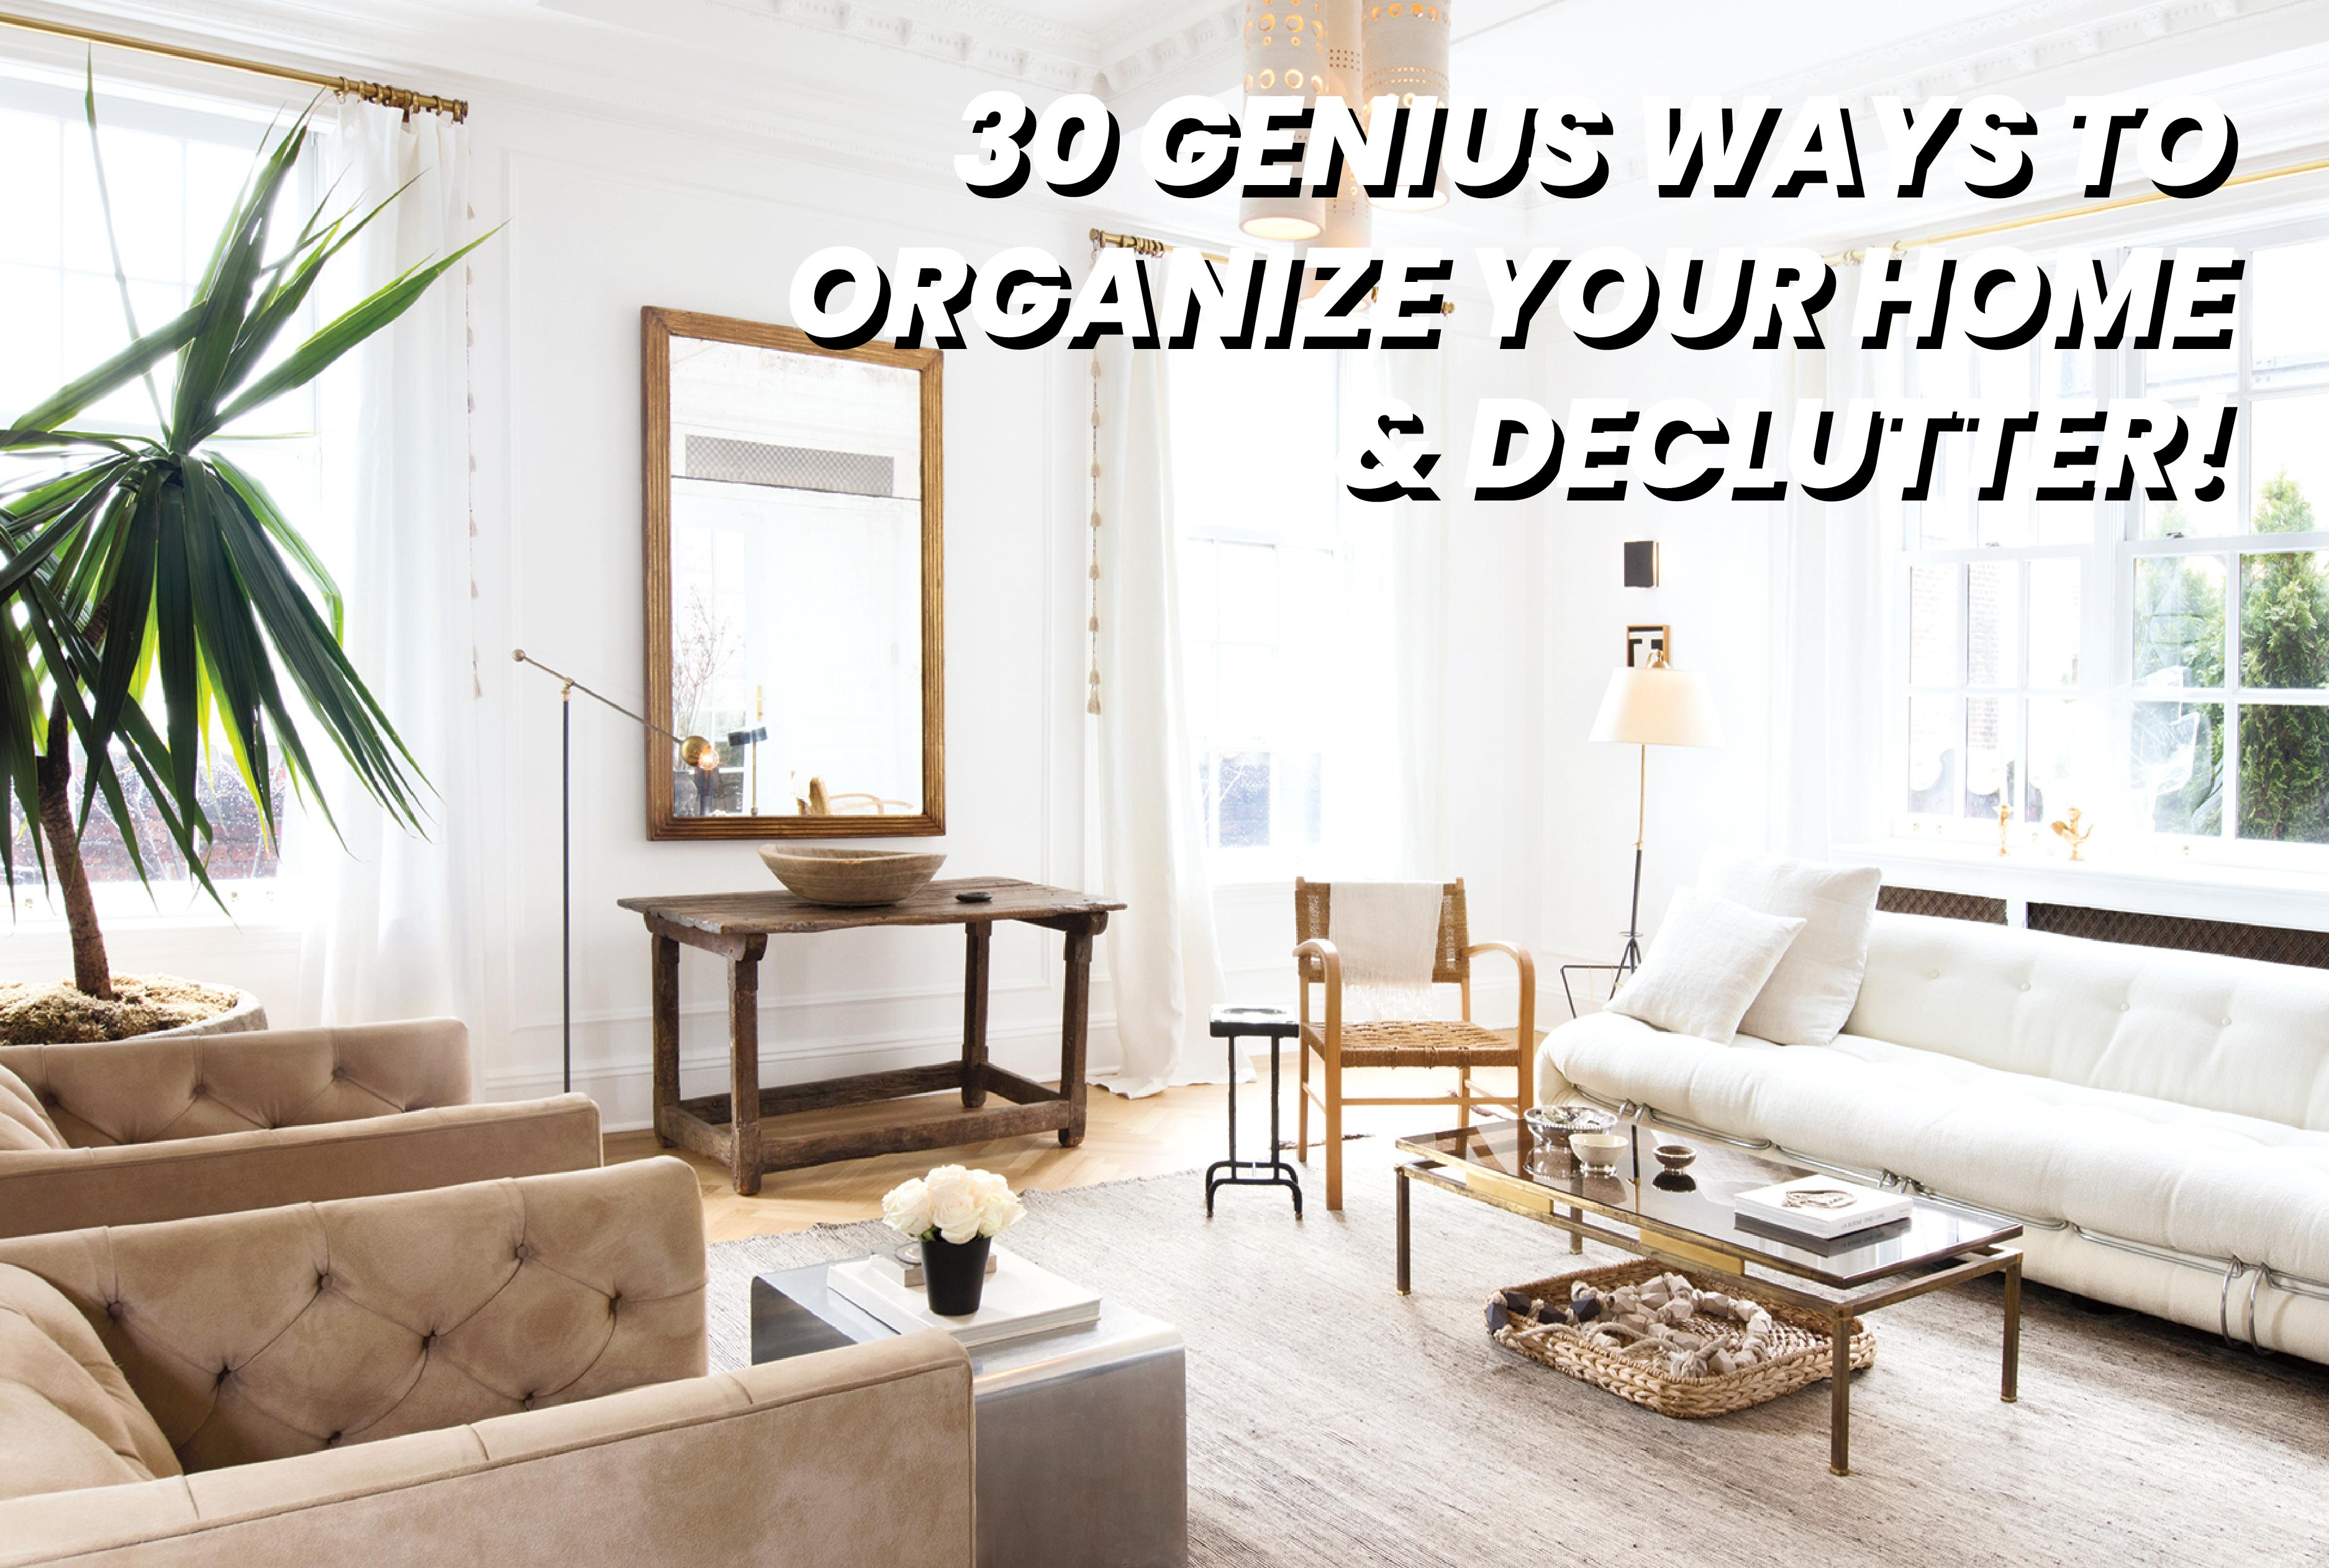 30 GENIUS WAYS TO ORGANIZE YOUR HOME AND DECLUTTER!